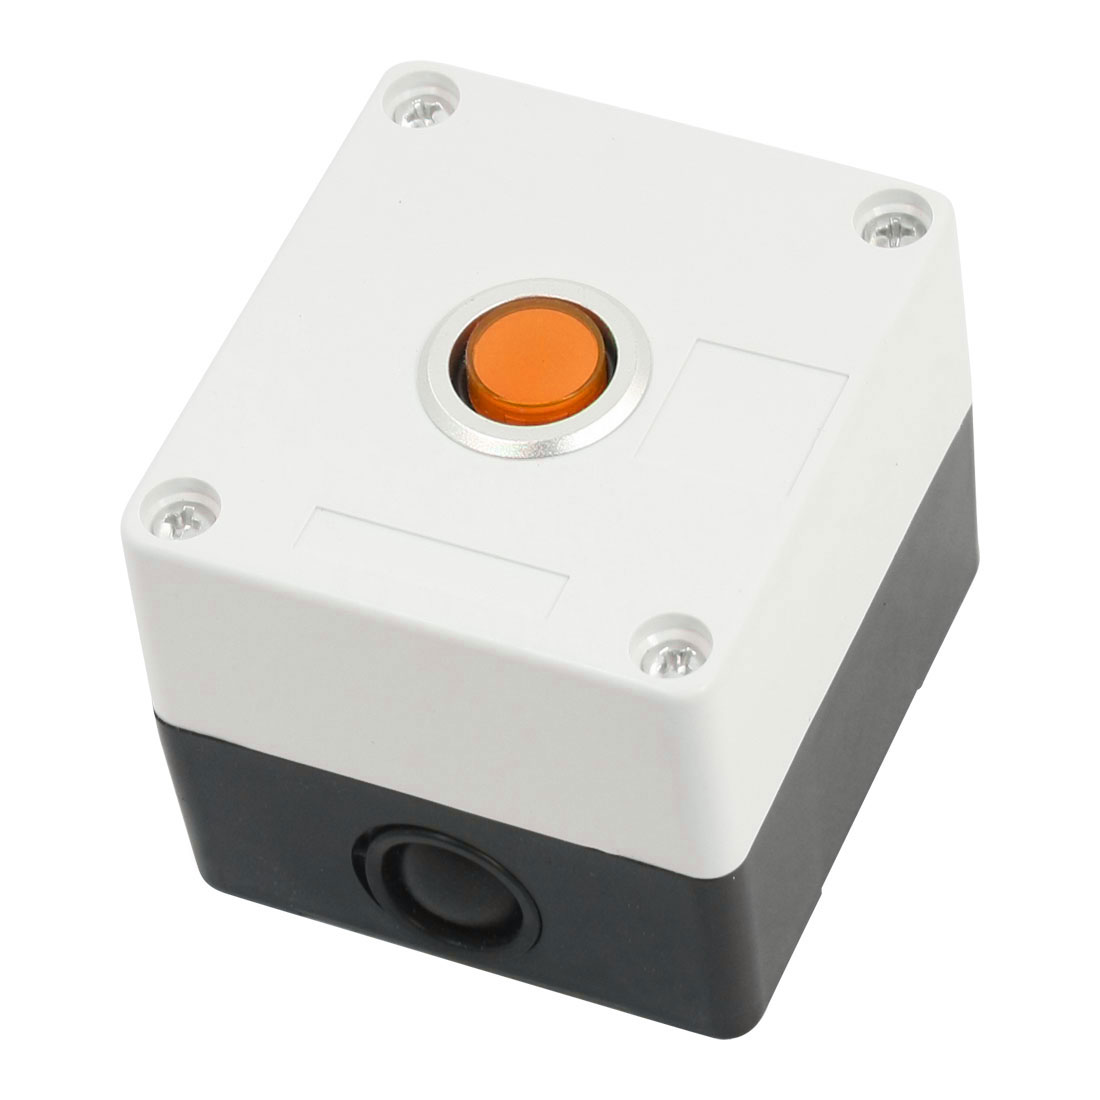 AC 220V 5A Orange Pilot Lamp SPDT 1NO 1NC 5-Pin Self-Locking Rectangle Plastic Push Button Control Station Box